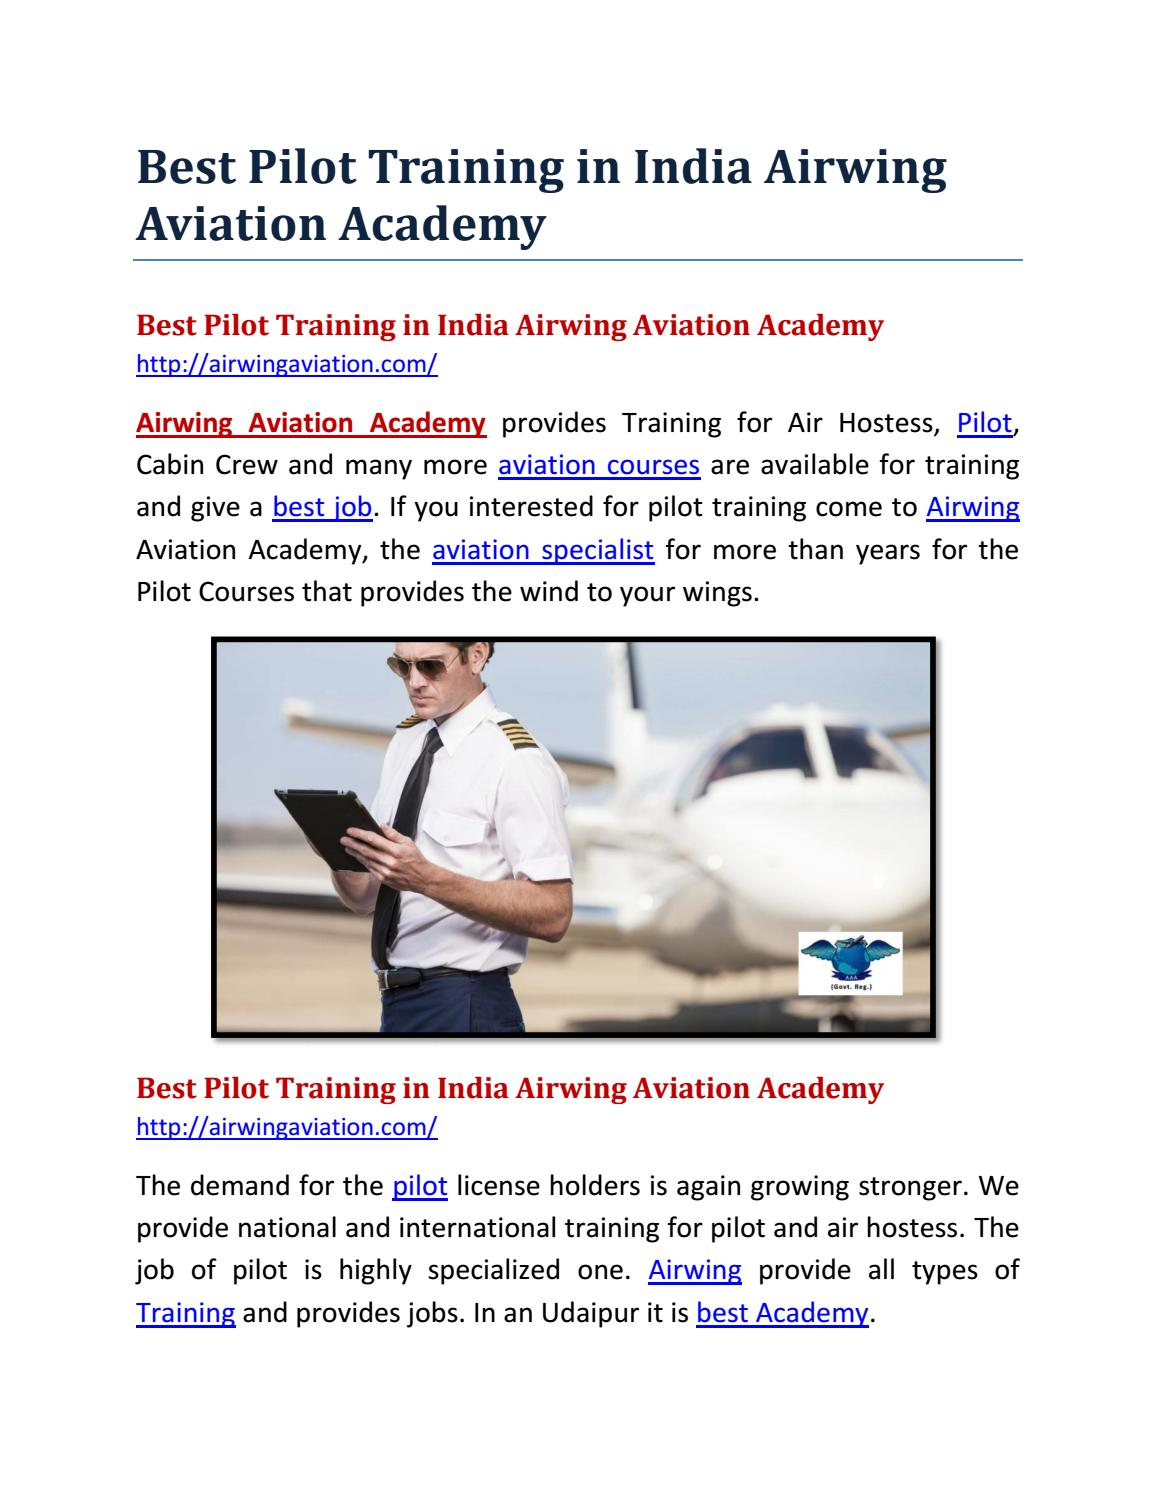 Best Pilot Training in India Airwing Aviation Academy by Nitika